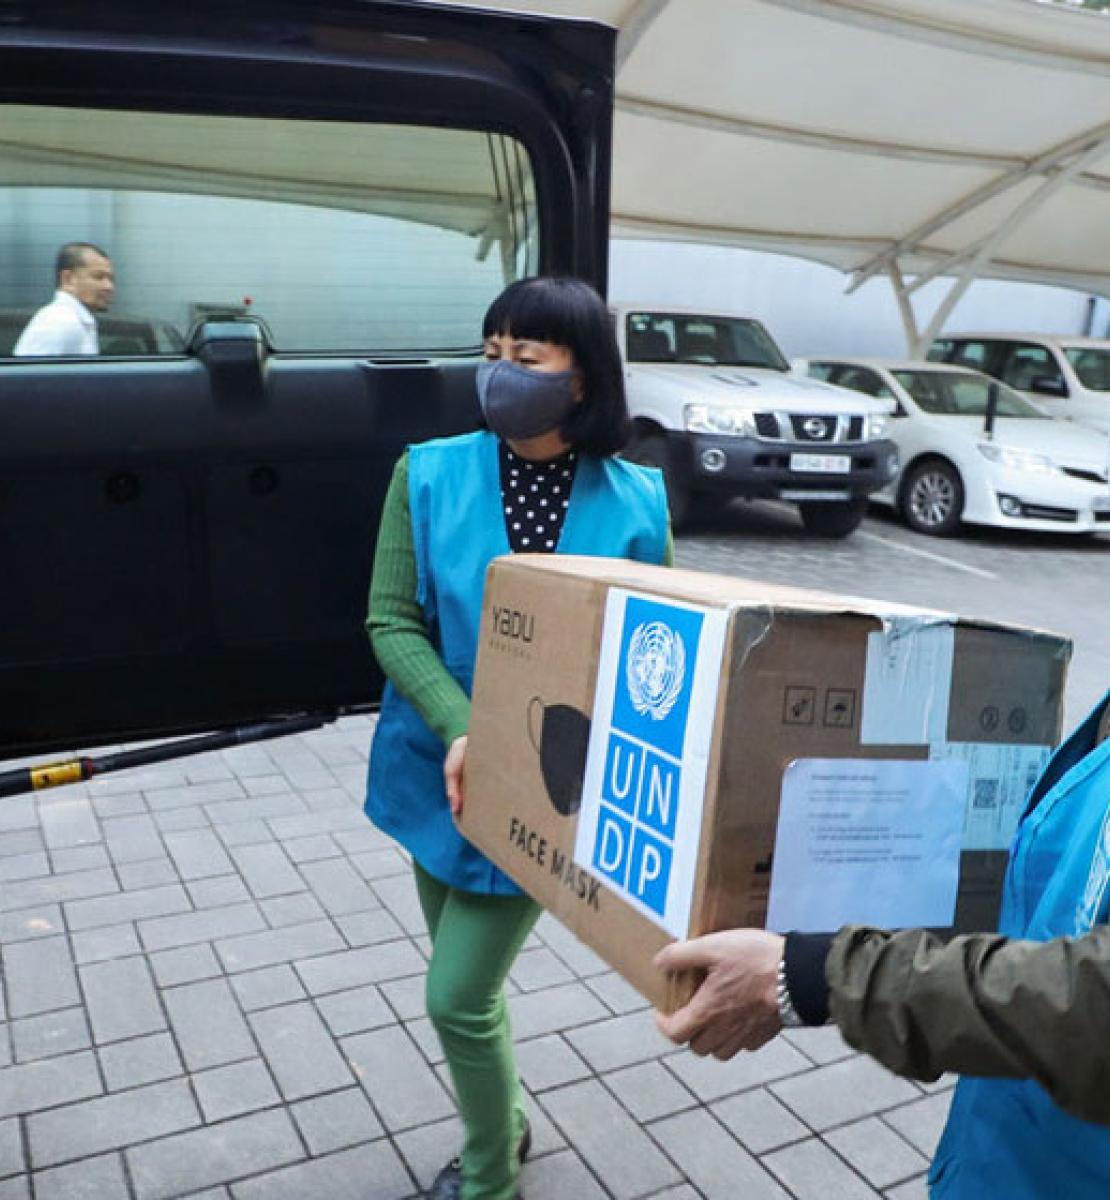 UN staff carry a box of supplies to a vehicle for distribution.